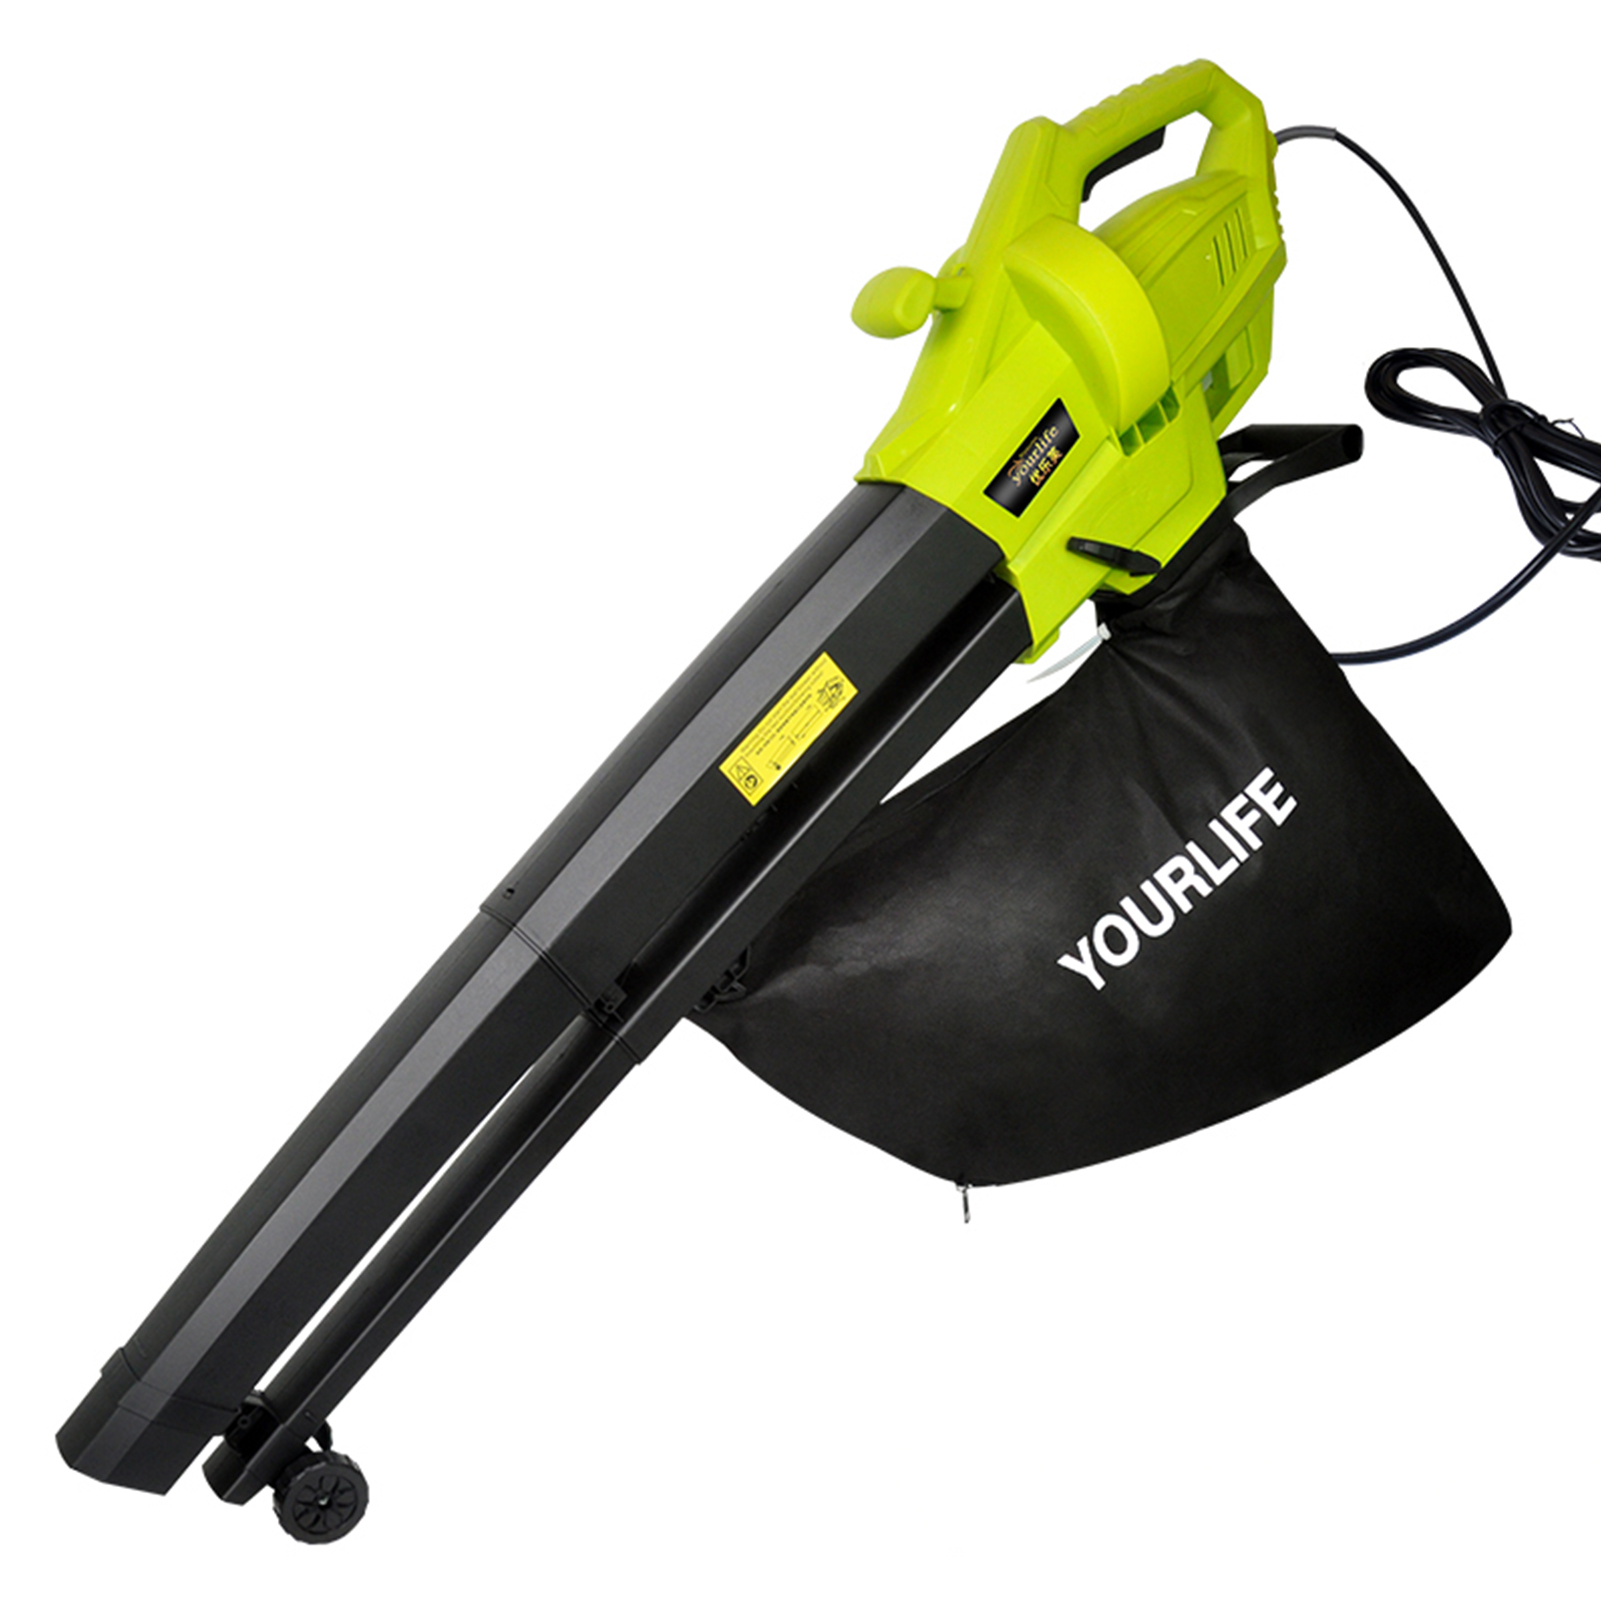 3000W Leaf Vacuum 3 In 1 Multi-function Durable Electric Garden Leaf Blower With 45L Collection Bag Leaf Snow Mulcher 220-240V